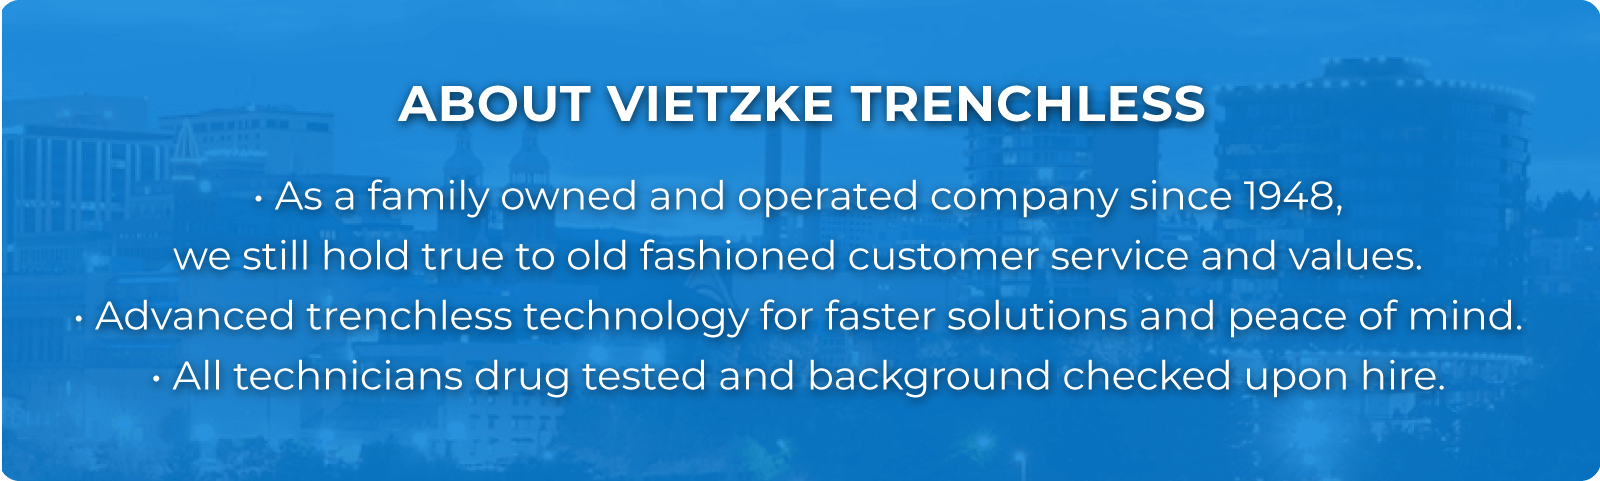 About Vietzke Trenchless